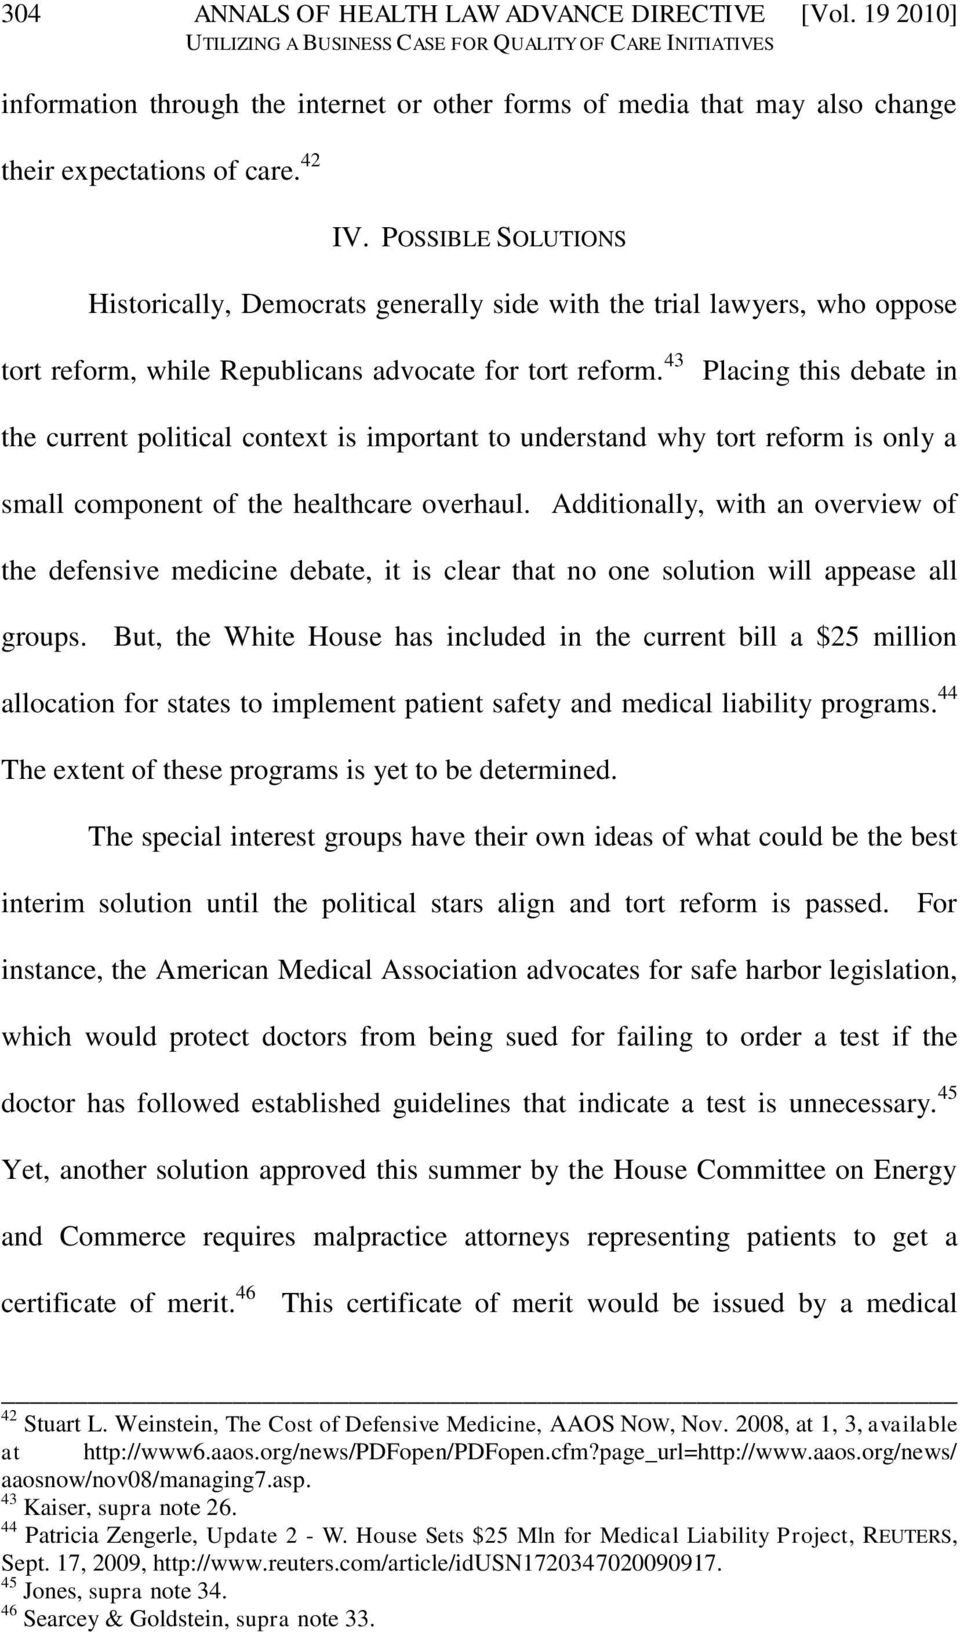 43 Placing this debate in the current political context is important to understand why tort reform is only a small component of the healthcare overhaul.